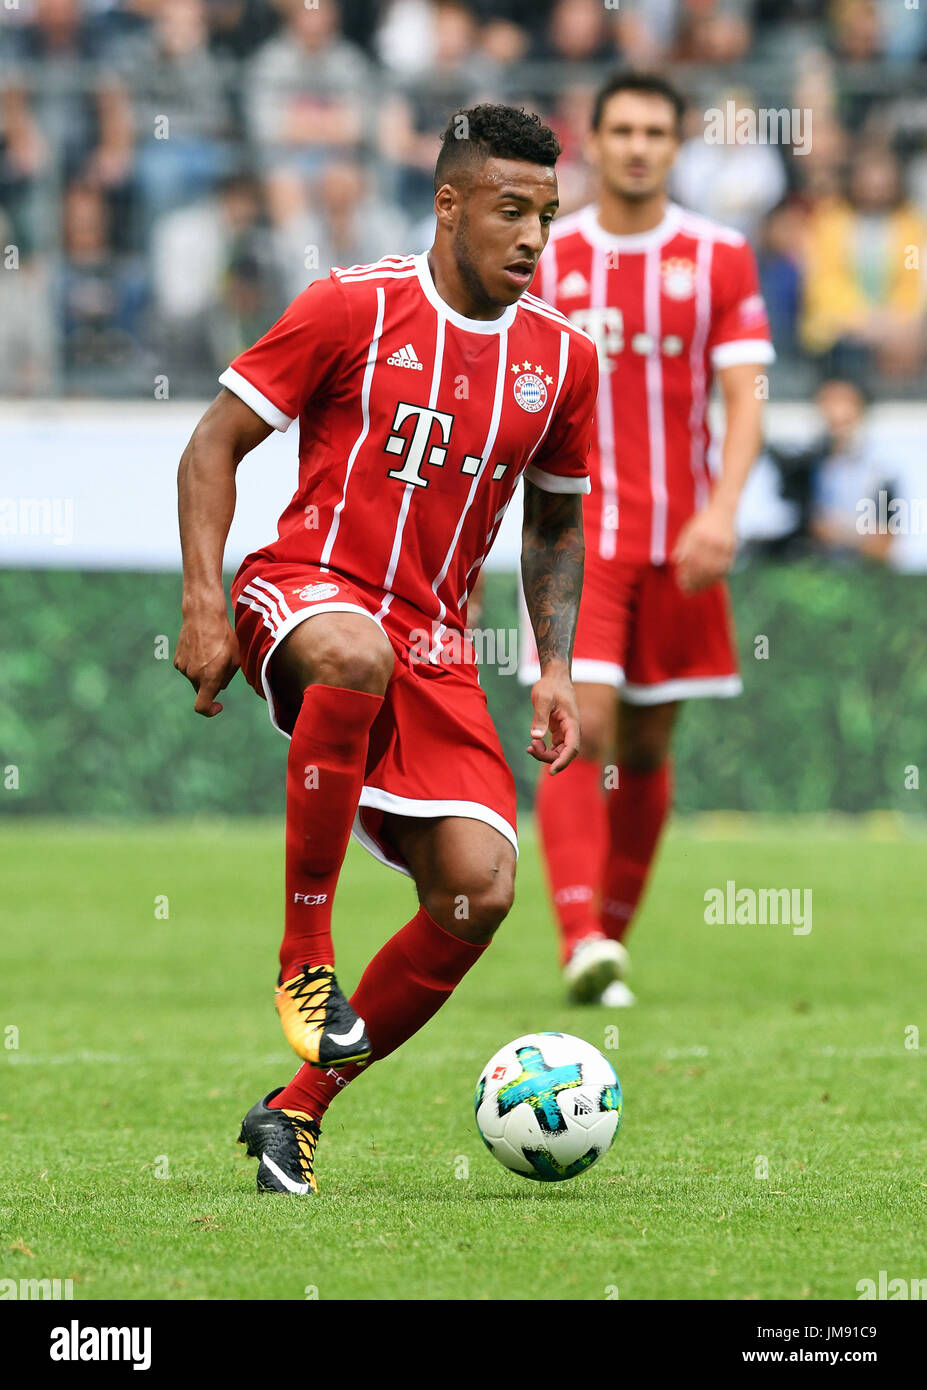 Tolisso High Resolution Stock Photography and Images - Alamy